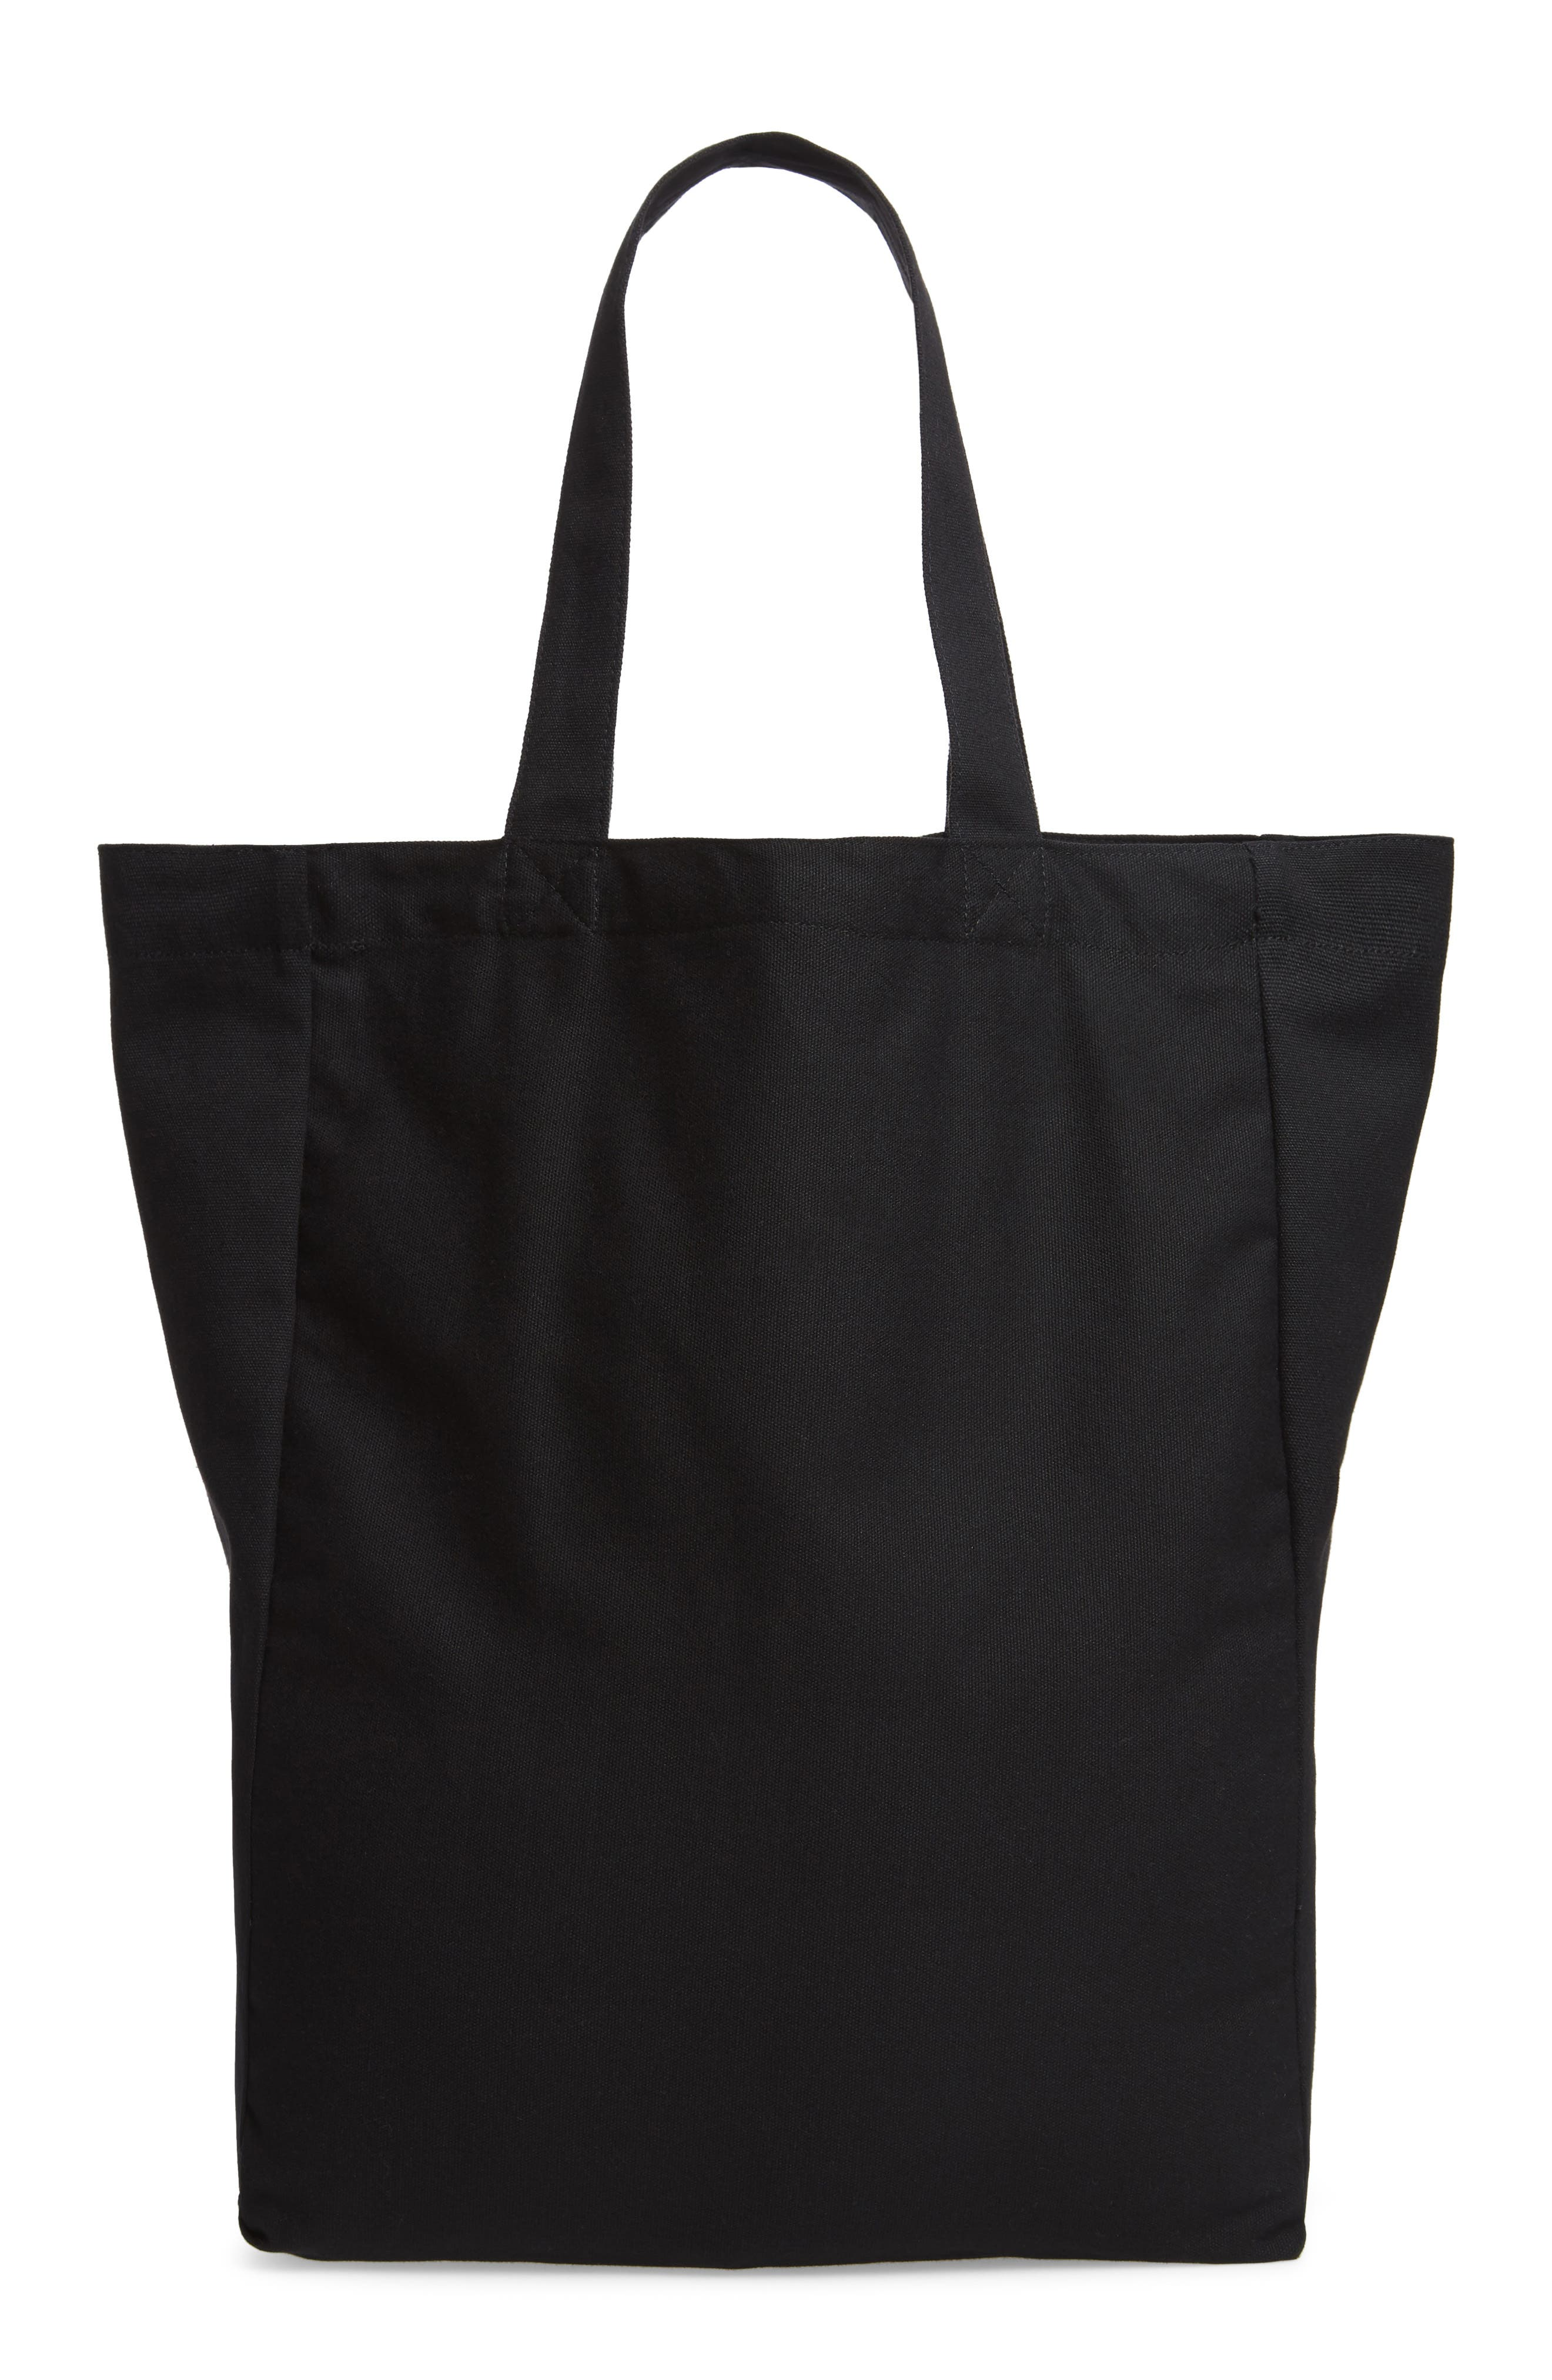 Established USA Tote Bag,                             Alternate thumbnail 3, color,                             Black